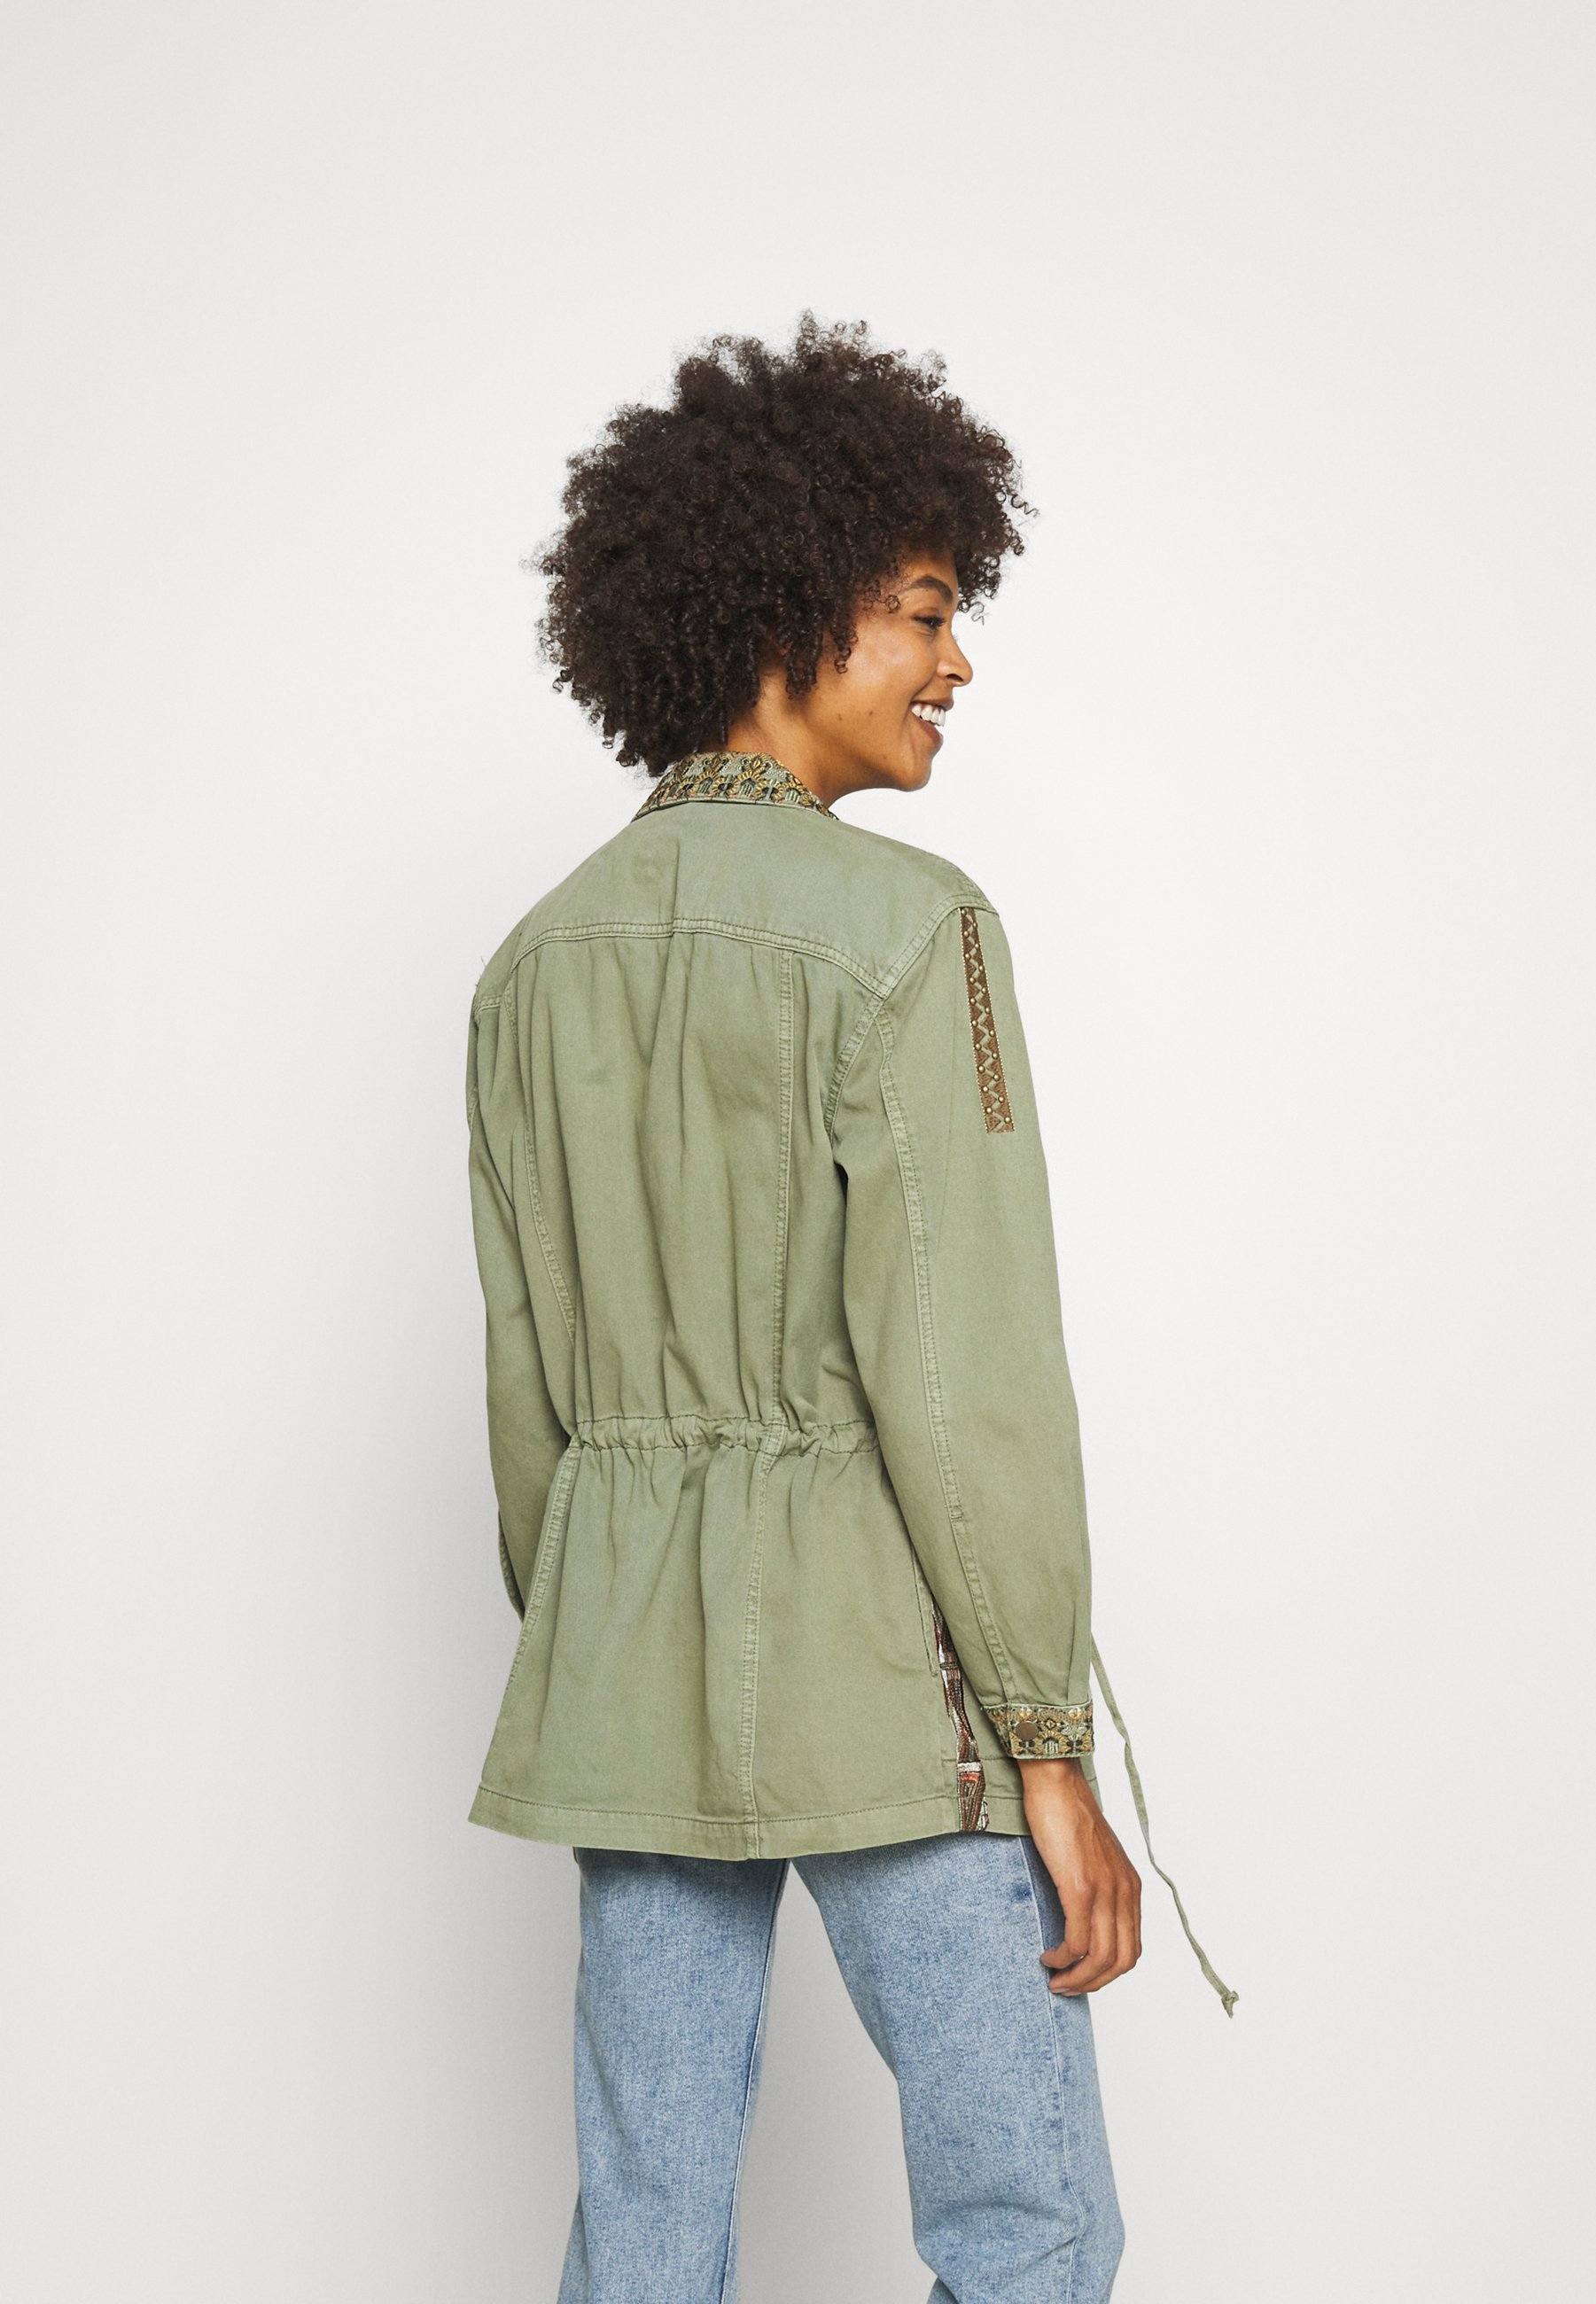 Cream JOSEFINE JACKET Leichte Jacke oil green/khaki